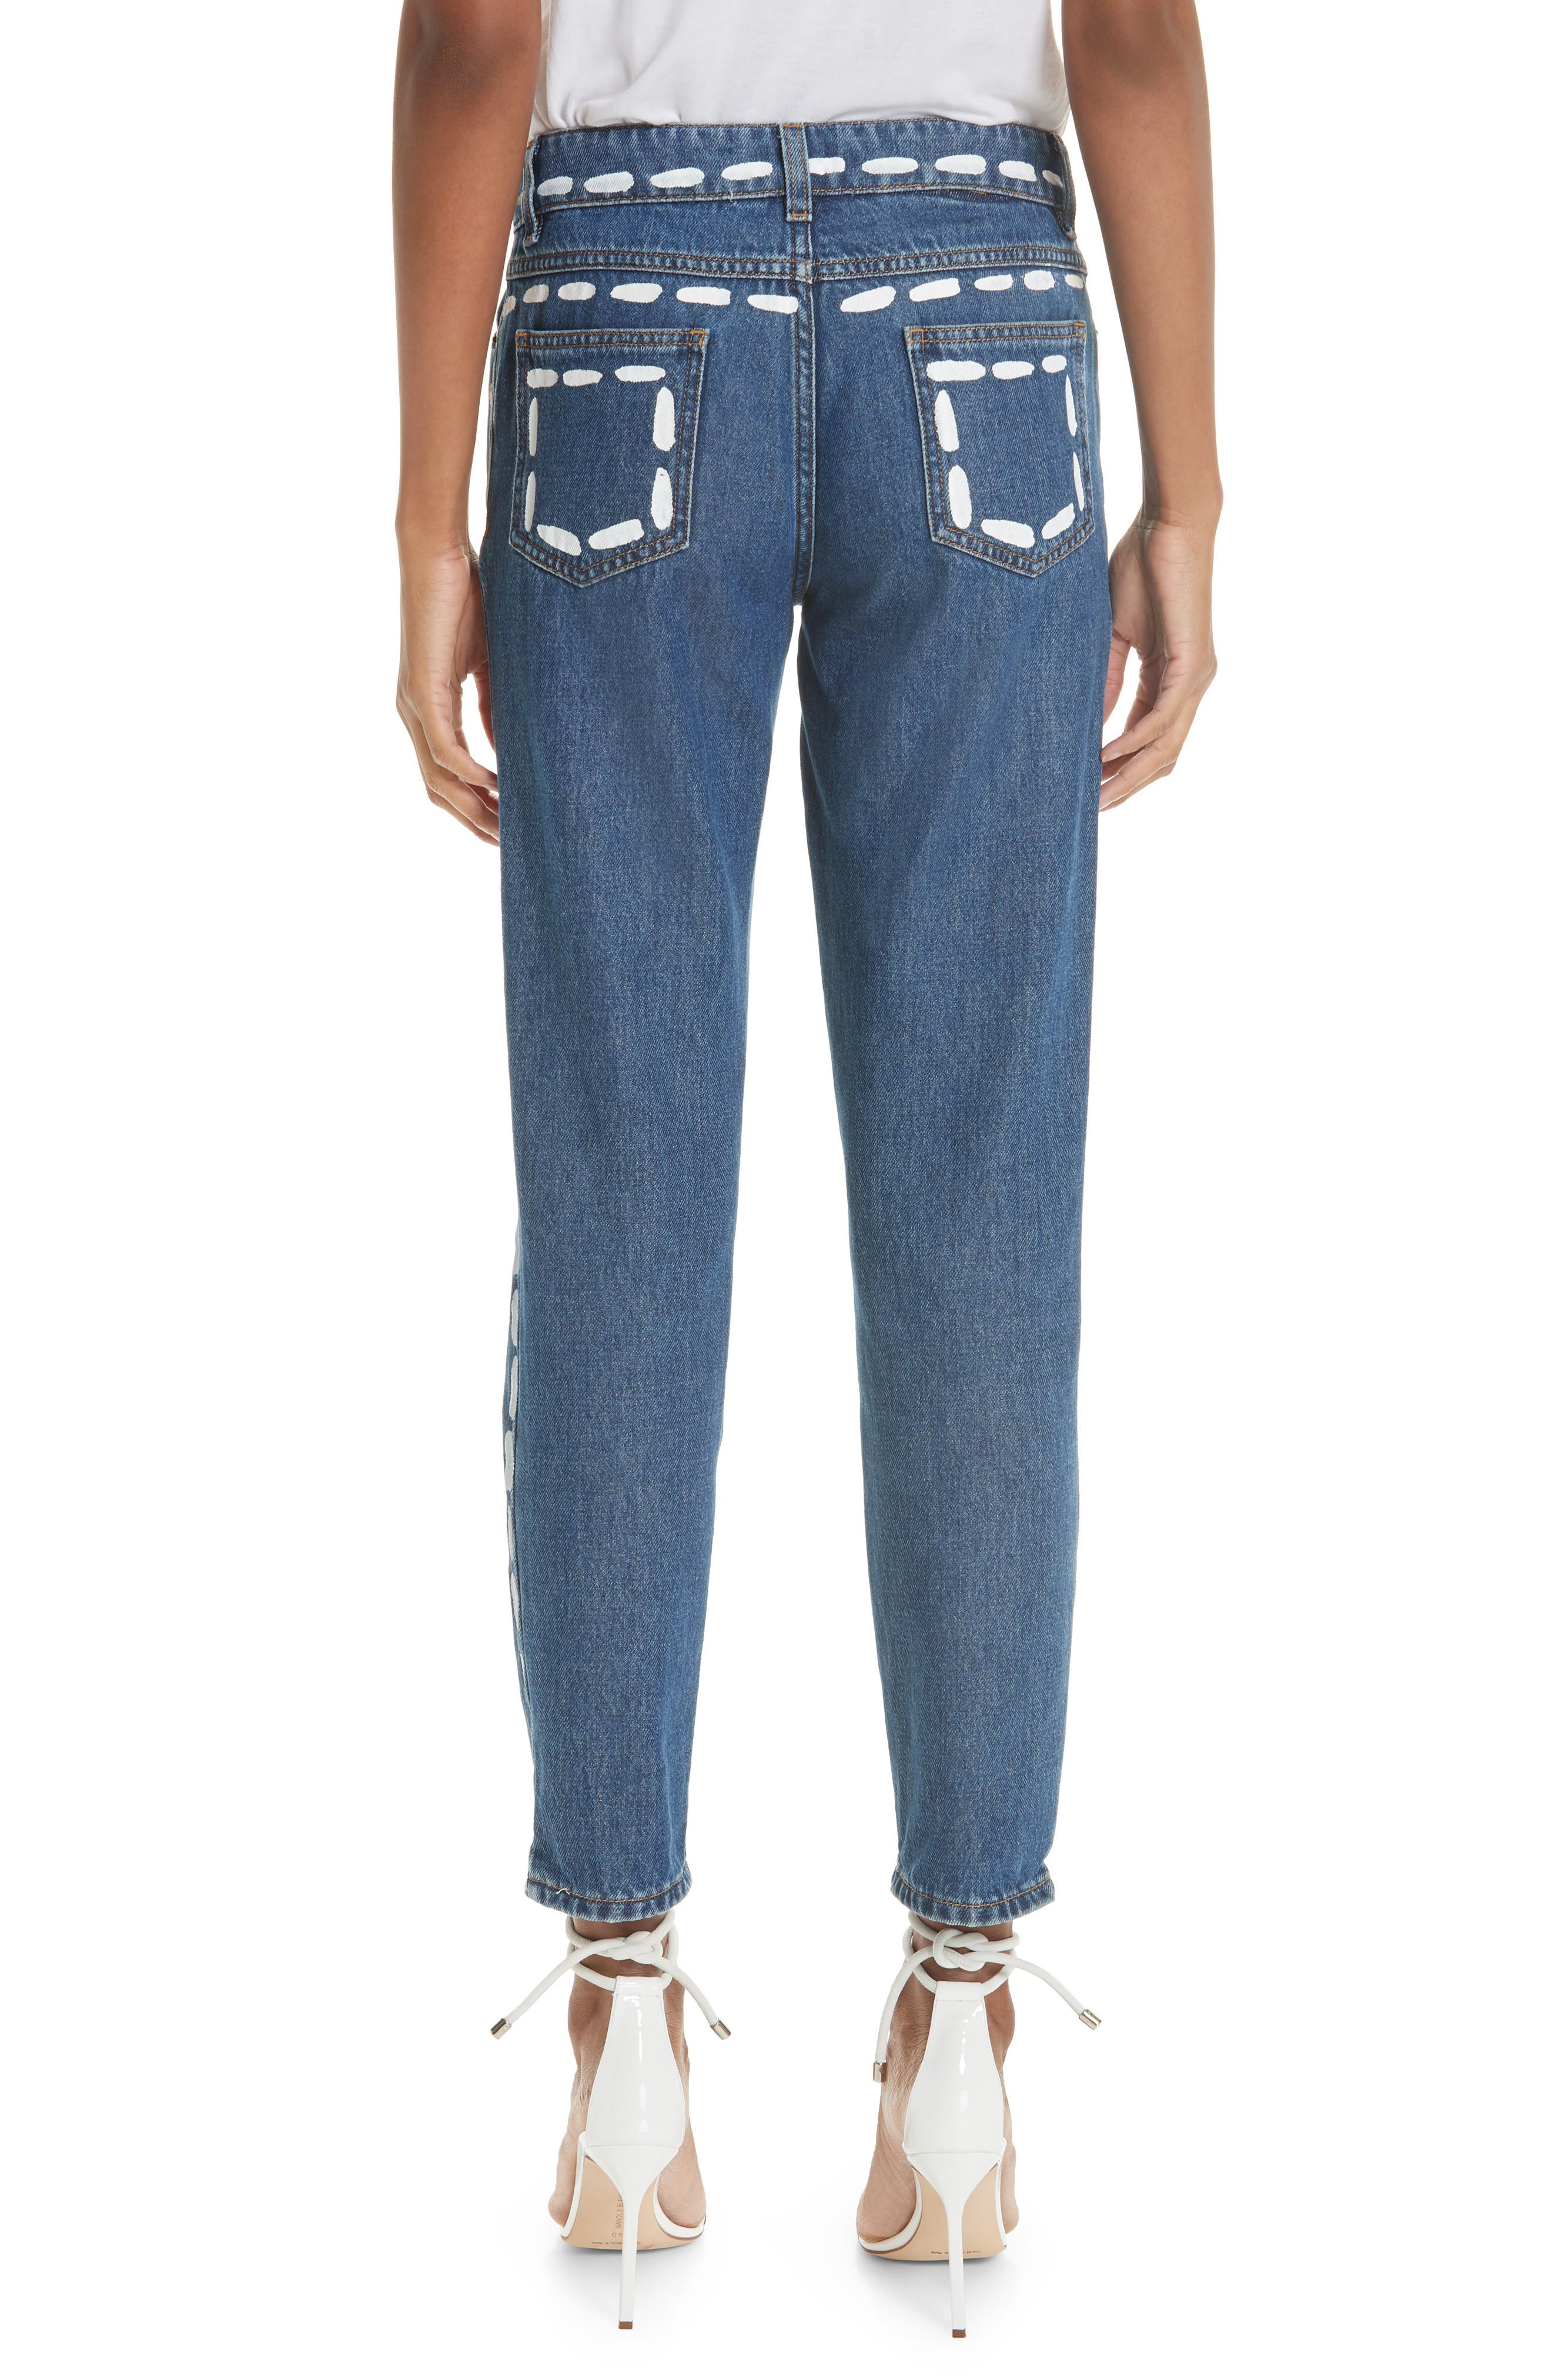 MOSCHINO,                             Dotted Line Straight Leg Jeans,                             Alternate thumbnail 2, color,                             DENIM